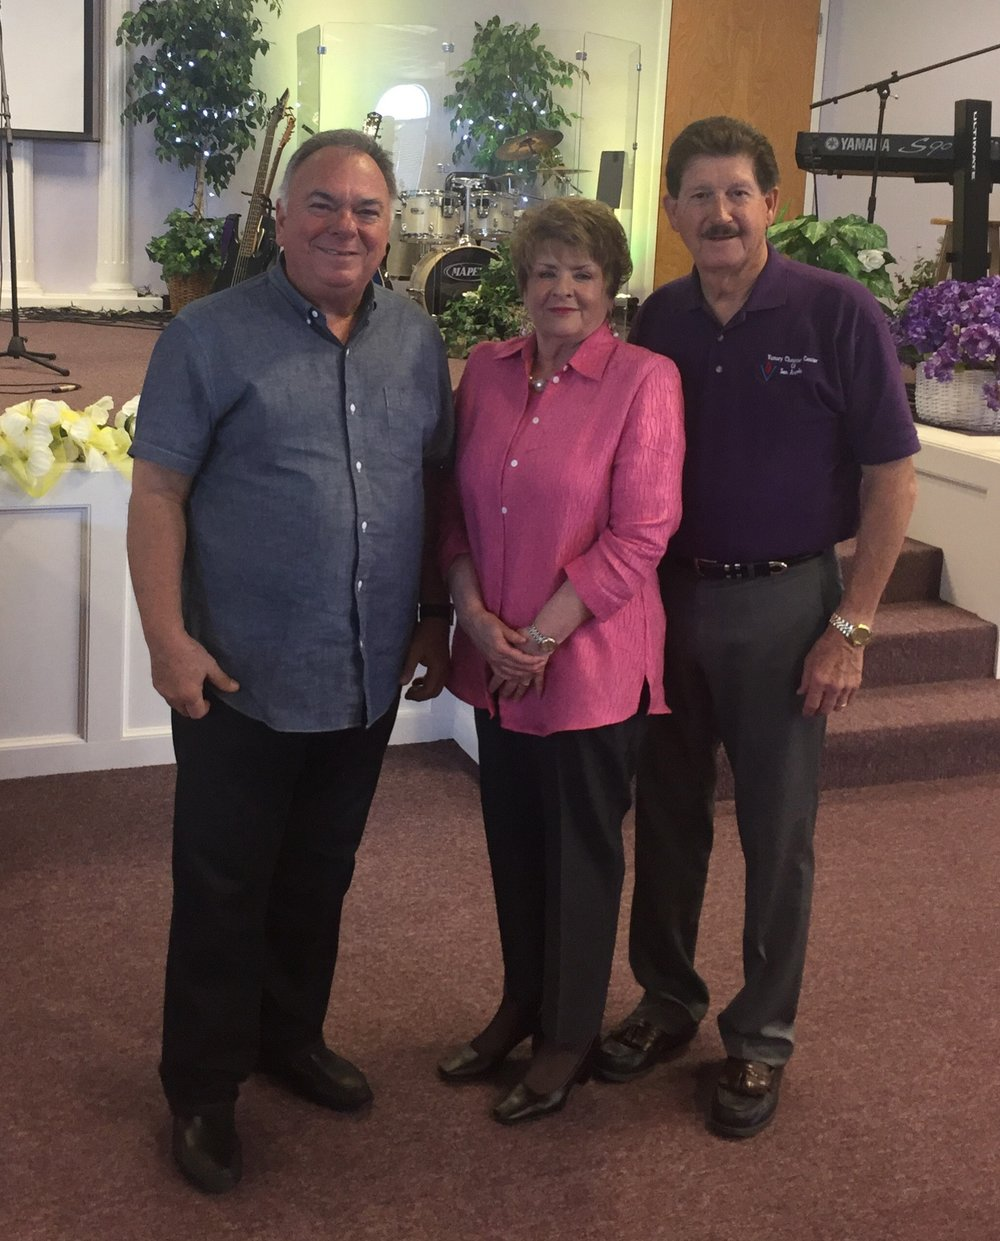 Pastors Jerry and Linda Roach - San Angelo, TX